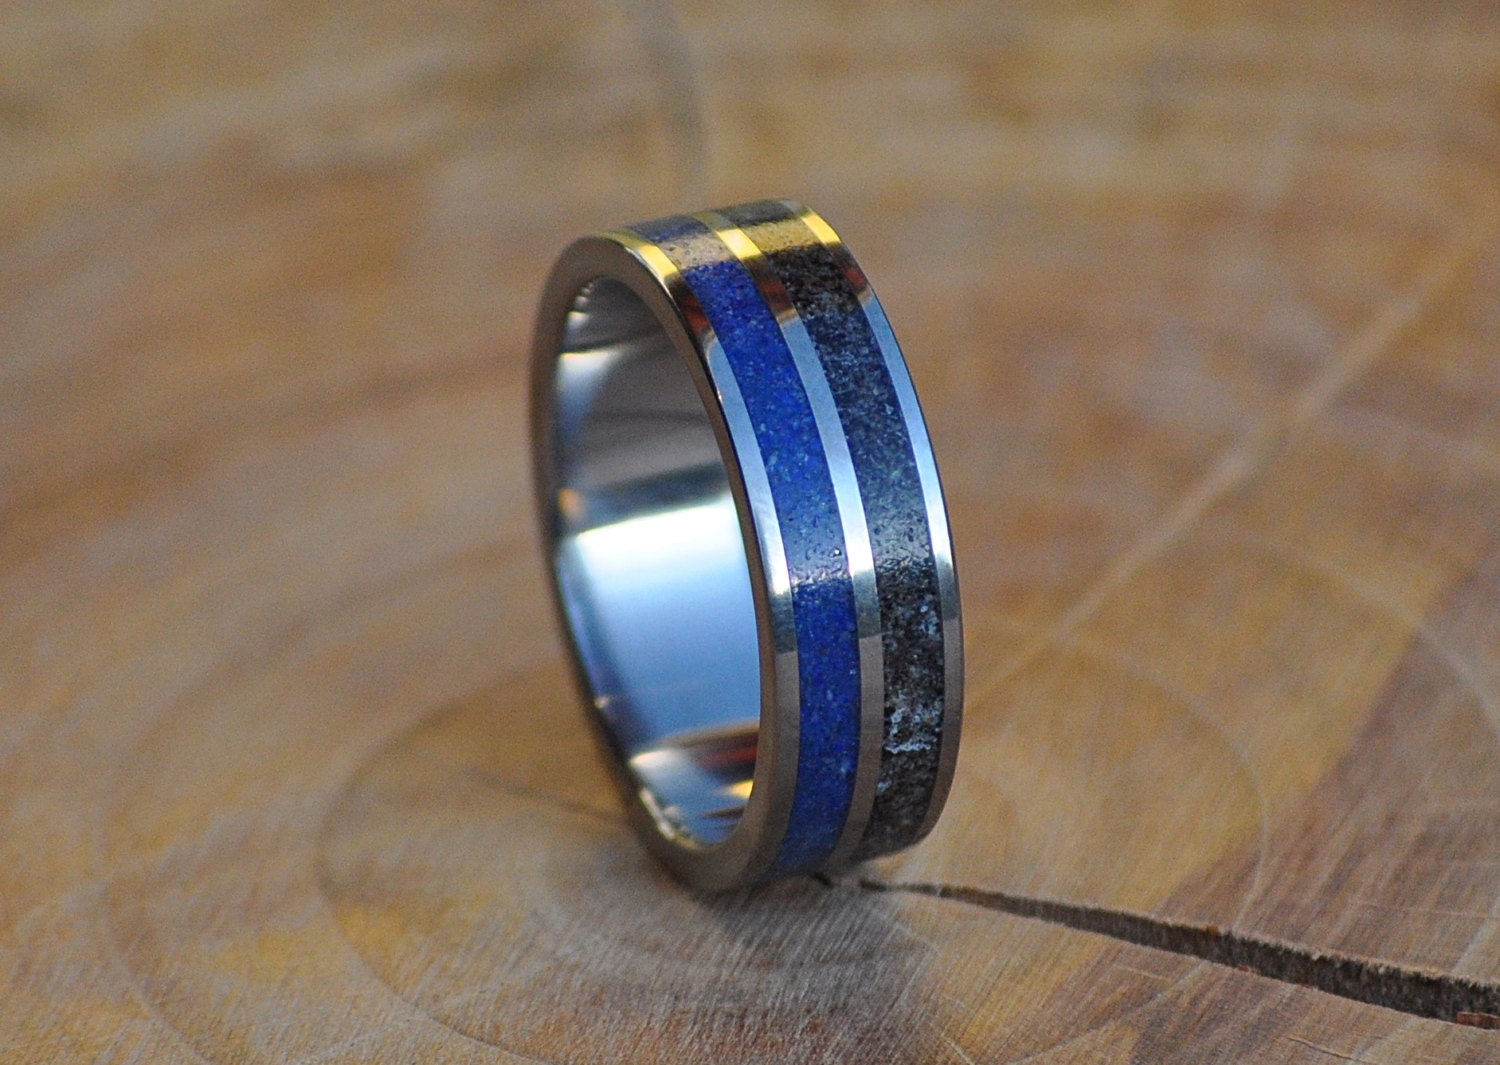 Stainless Steel Ring For Women And Men With Lapis Lazuli And Etsy